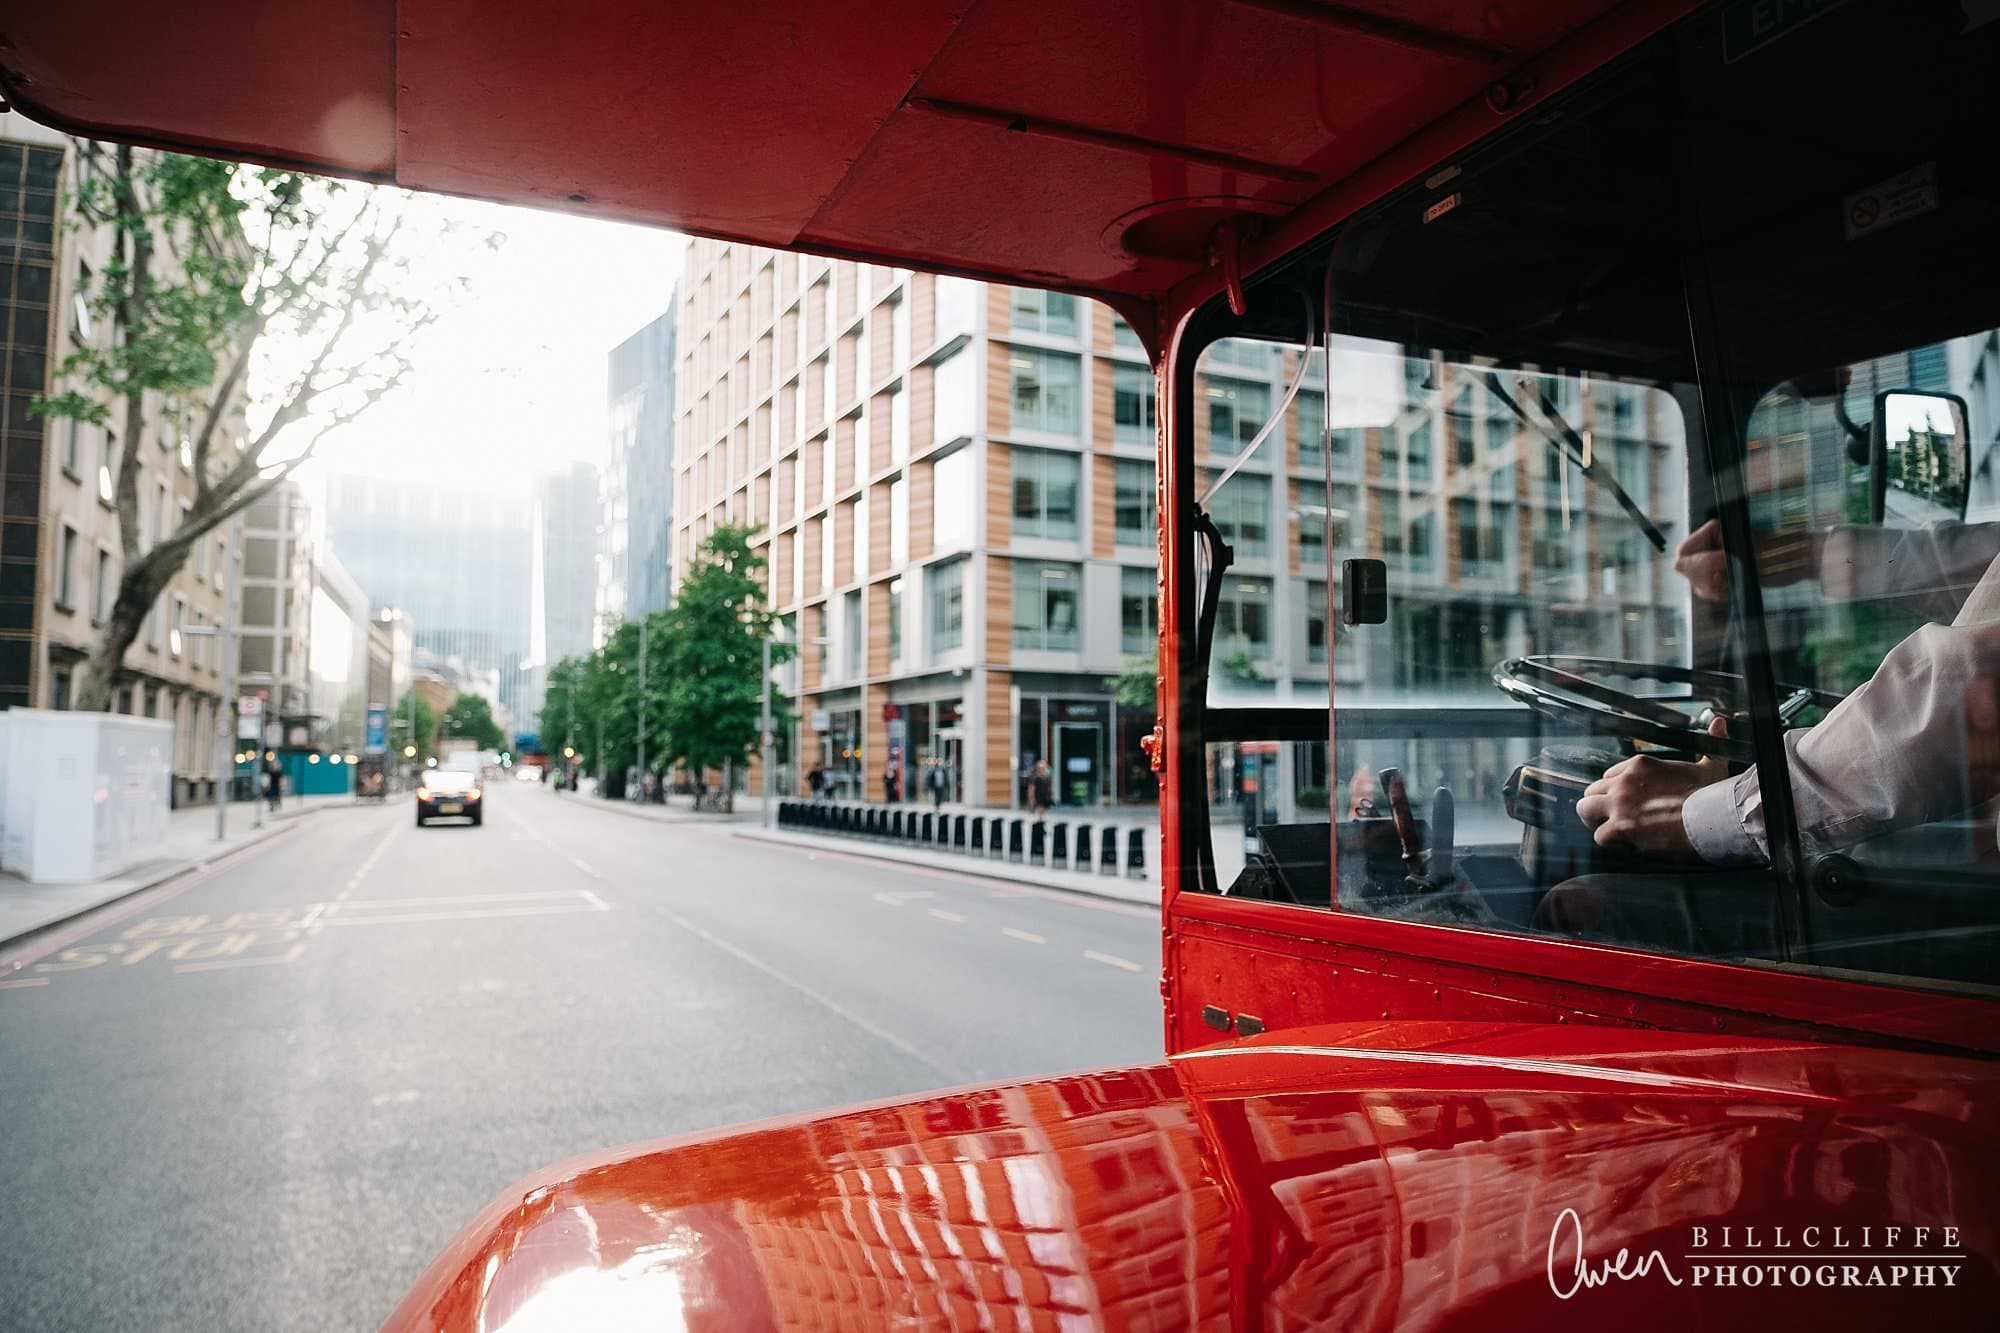 london engagement proposal photographer routemaster gr 012 - A Romantic Marriage Proposal on a London Routemaster Bus